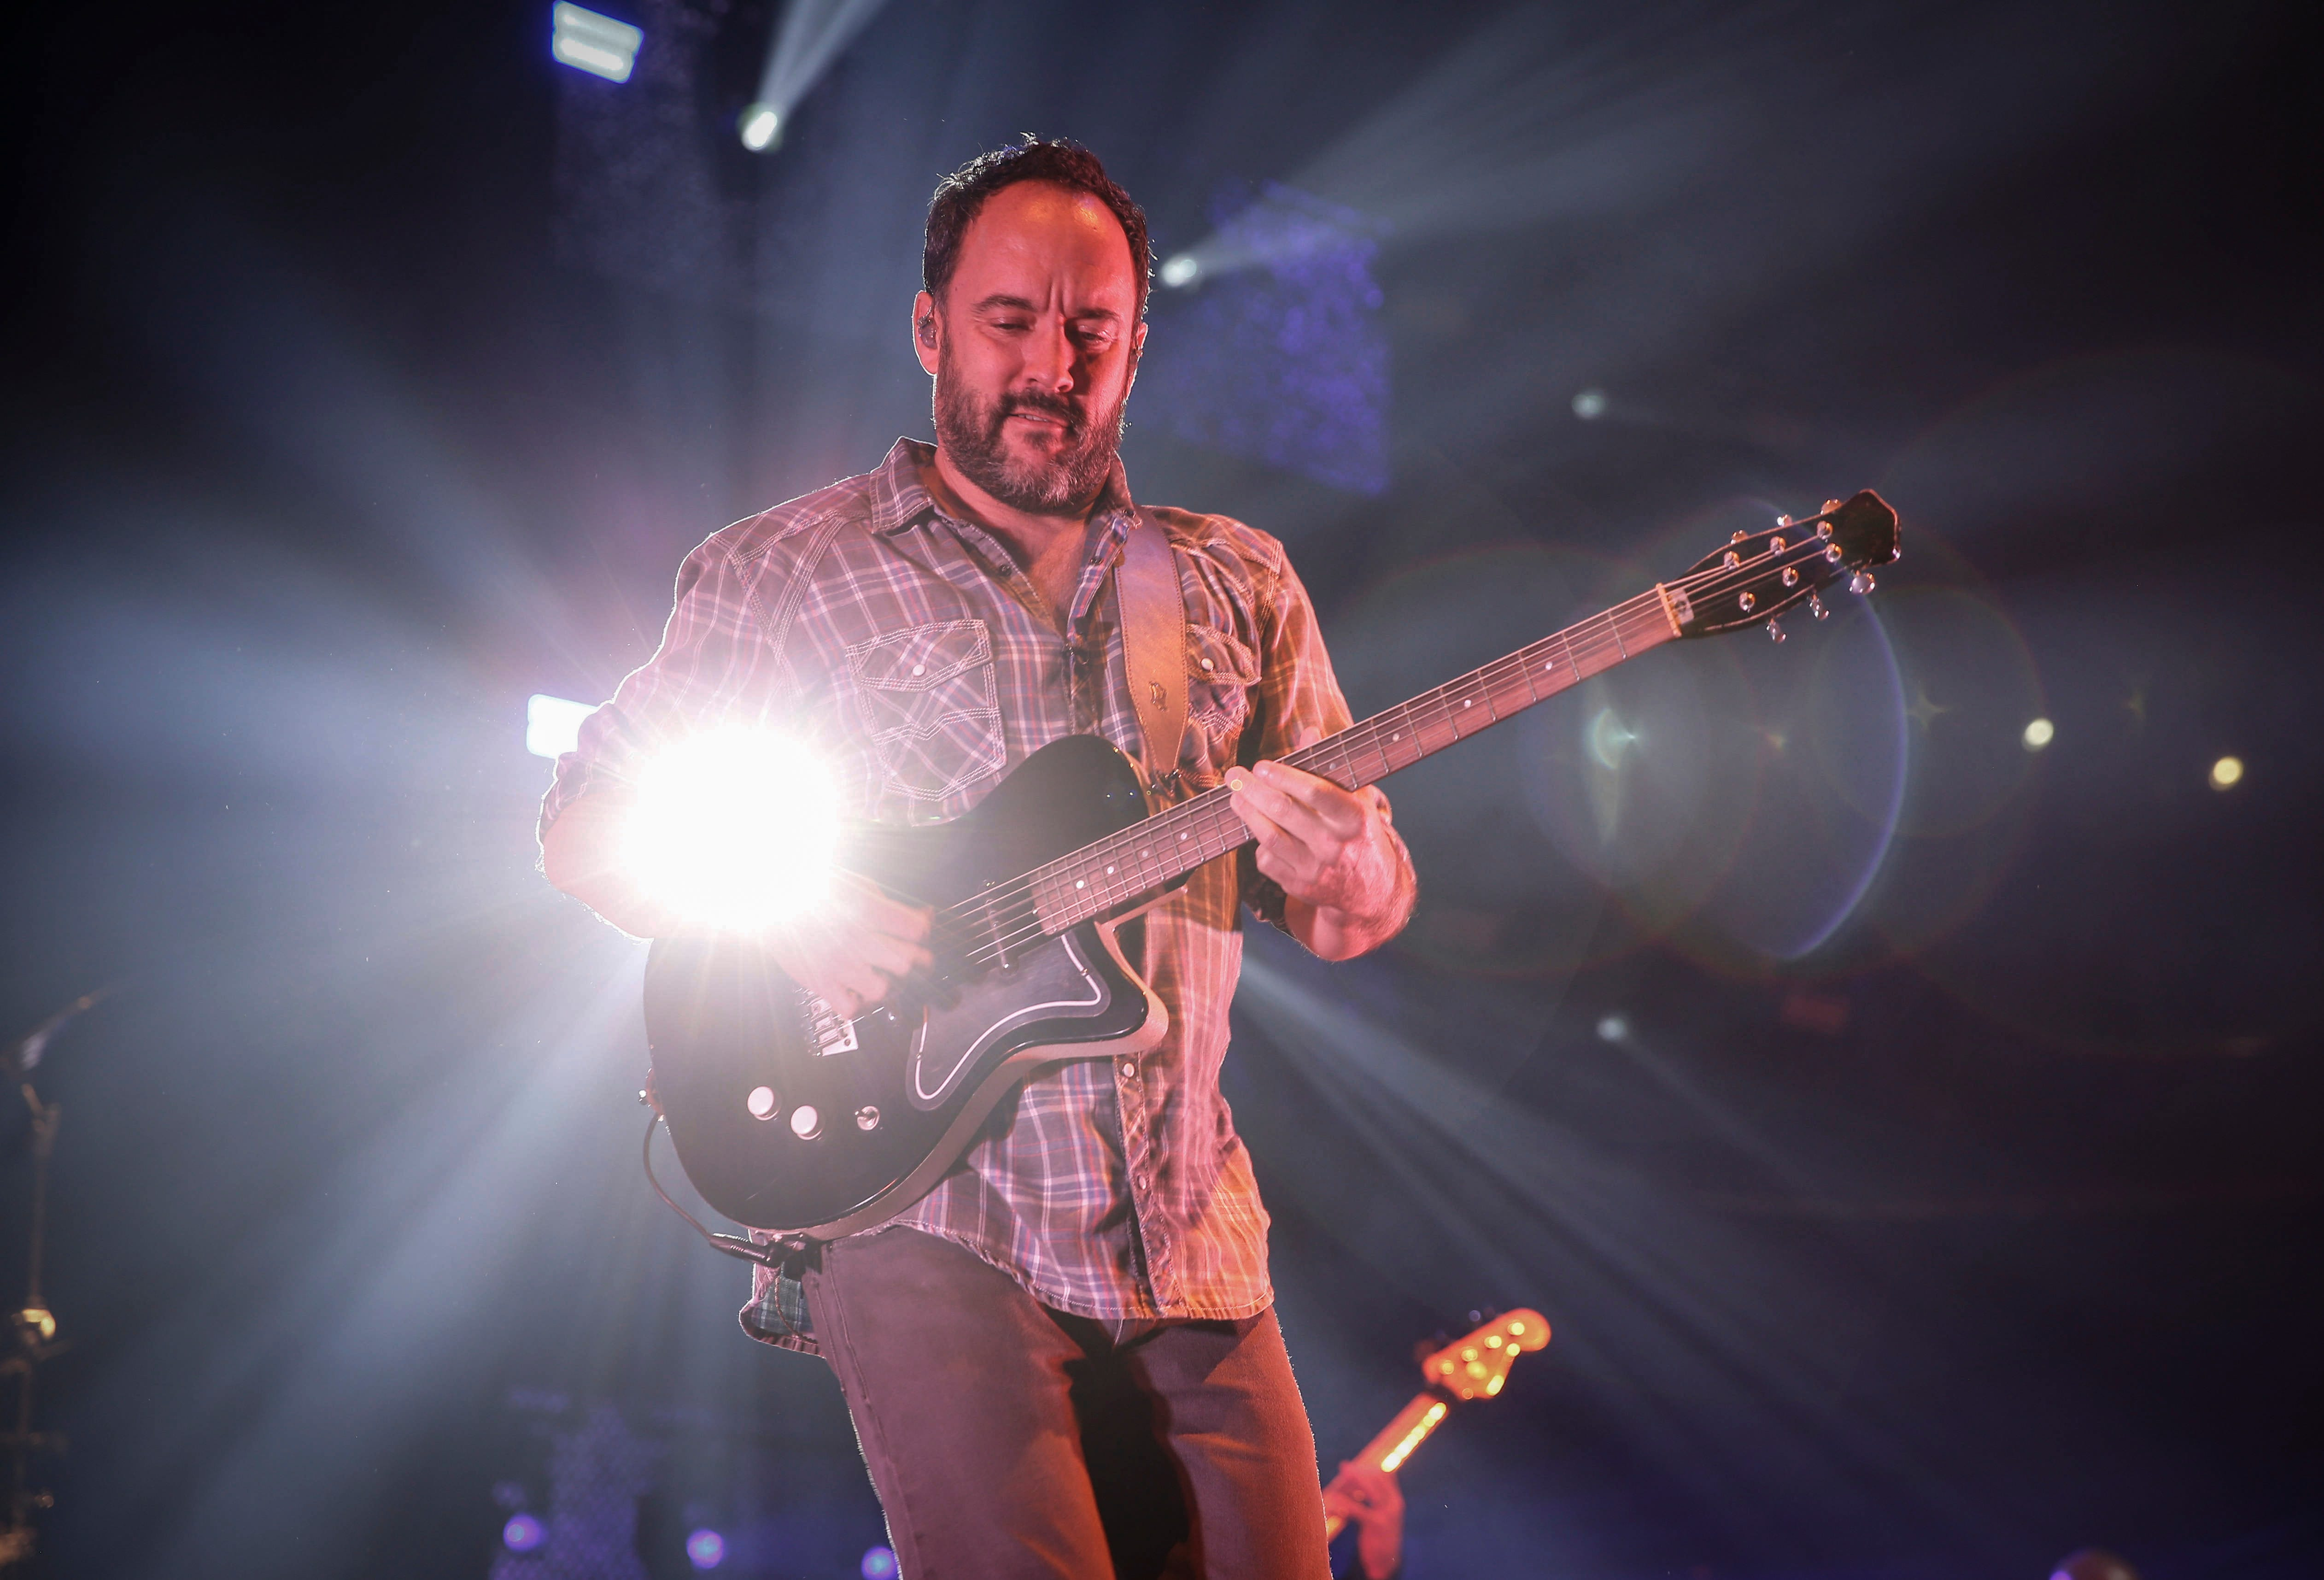 Photos: Dave Matthews Band performs for packed Wells Fargo Arena